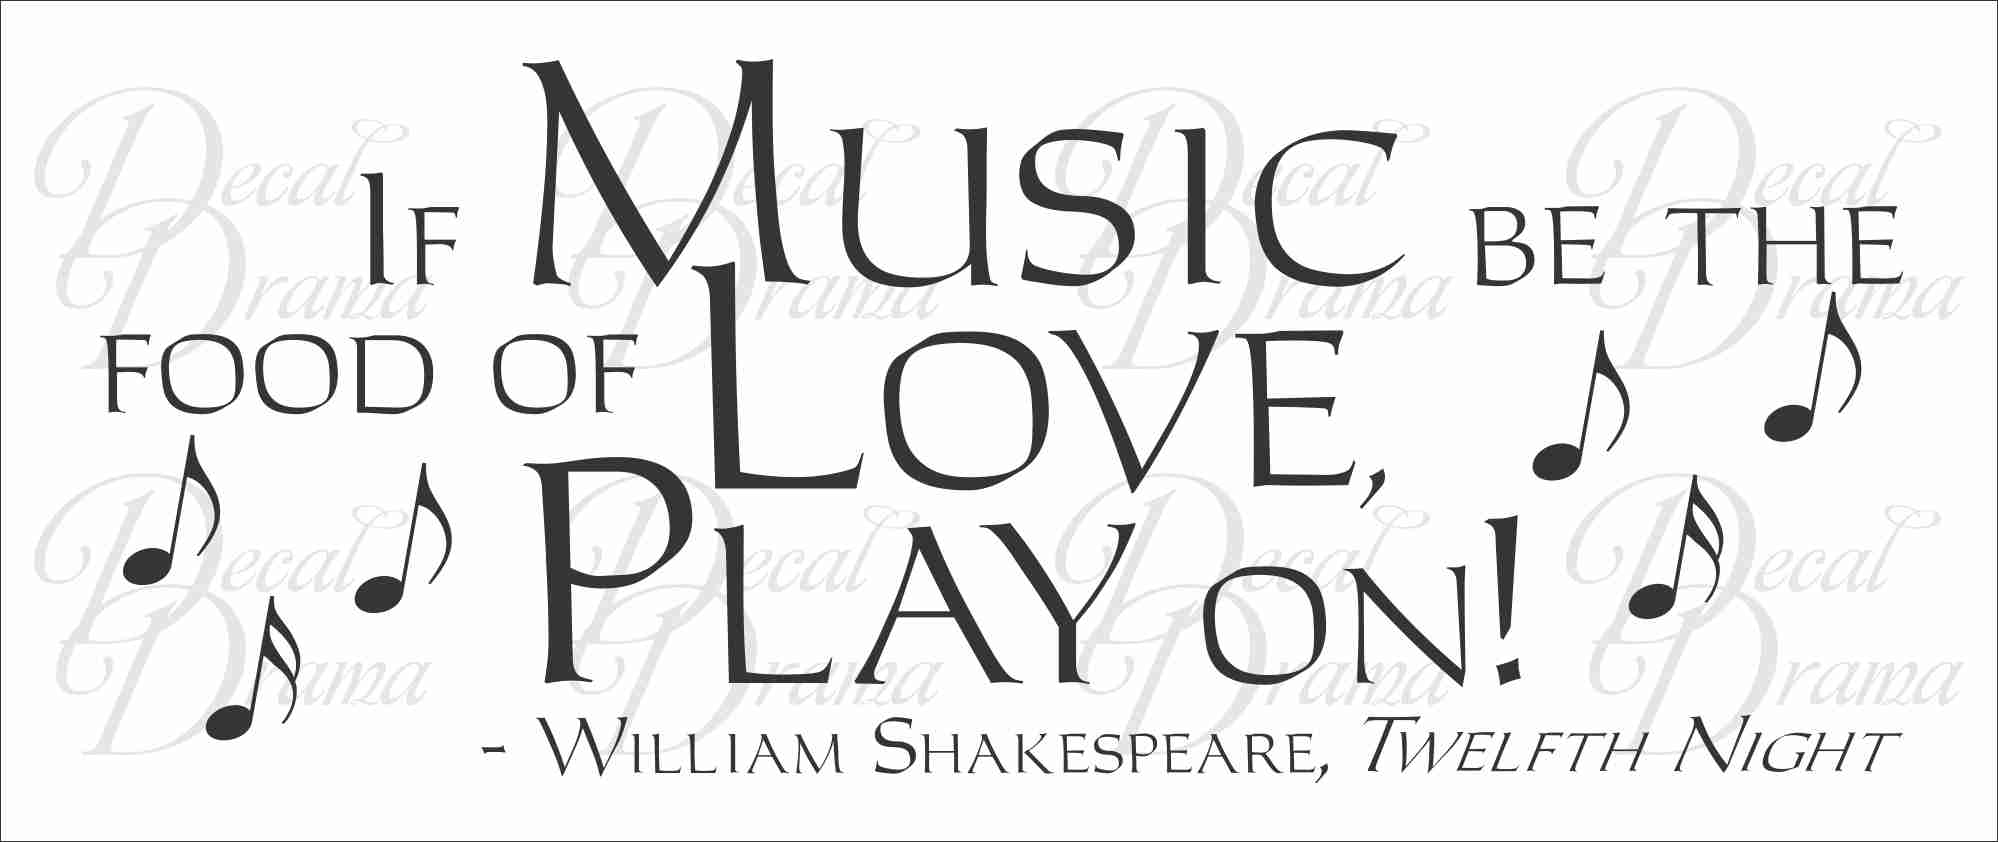 If MUSIC be the Food of LOVE, Play on, William Shakespeare, Twelfth Night